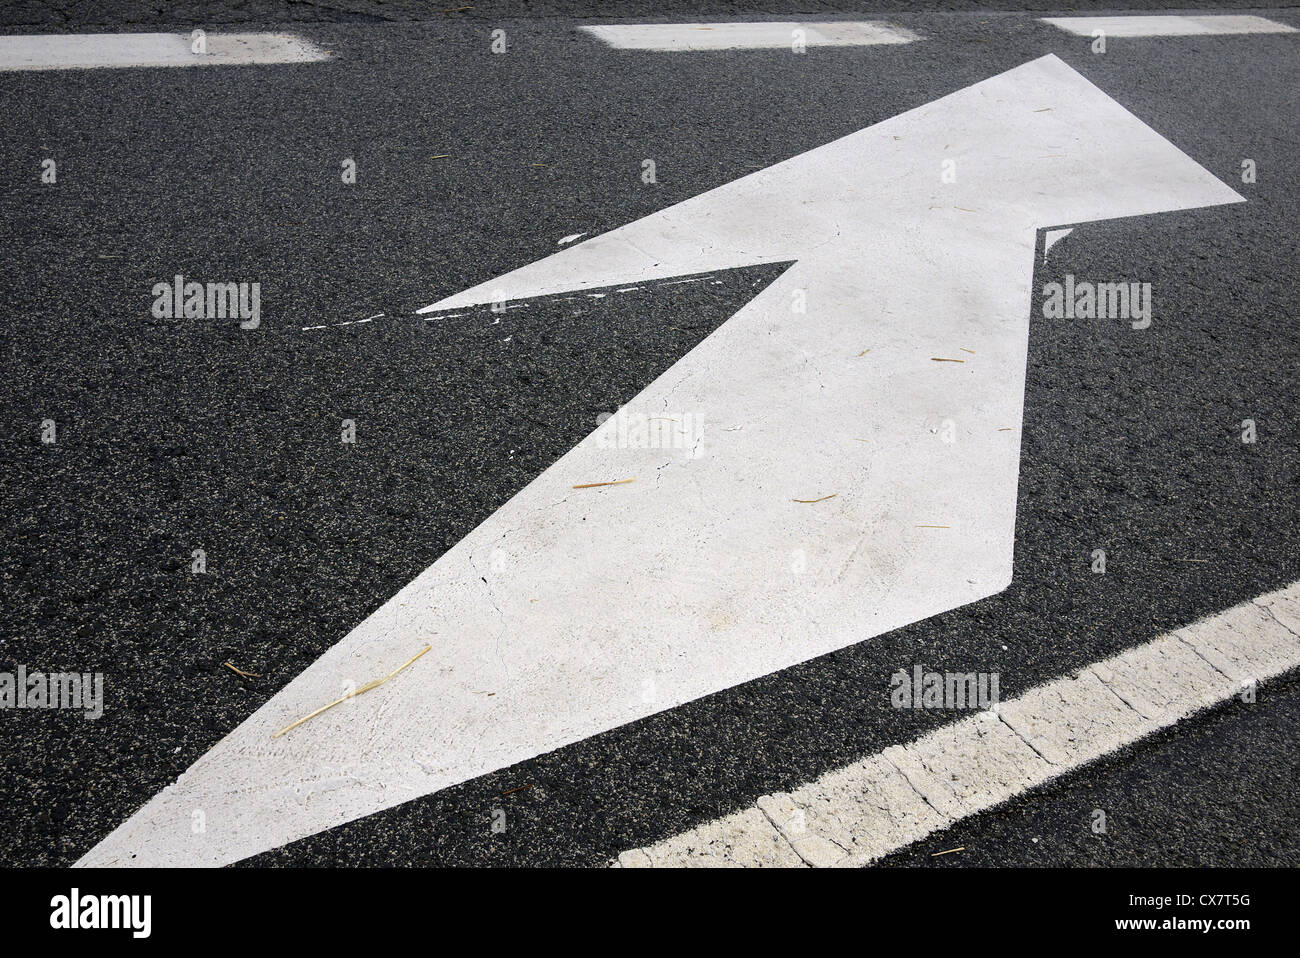 White arrow painted on a road. - Stock Image